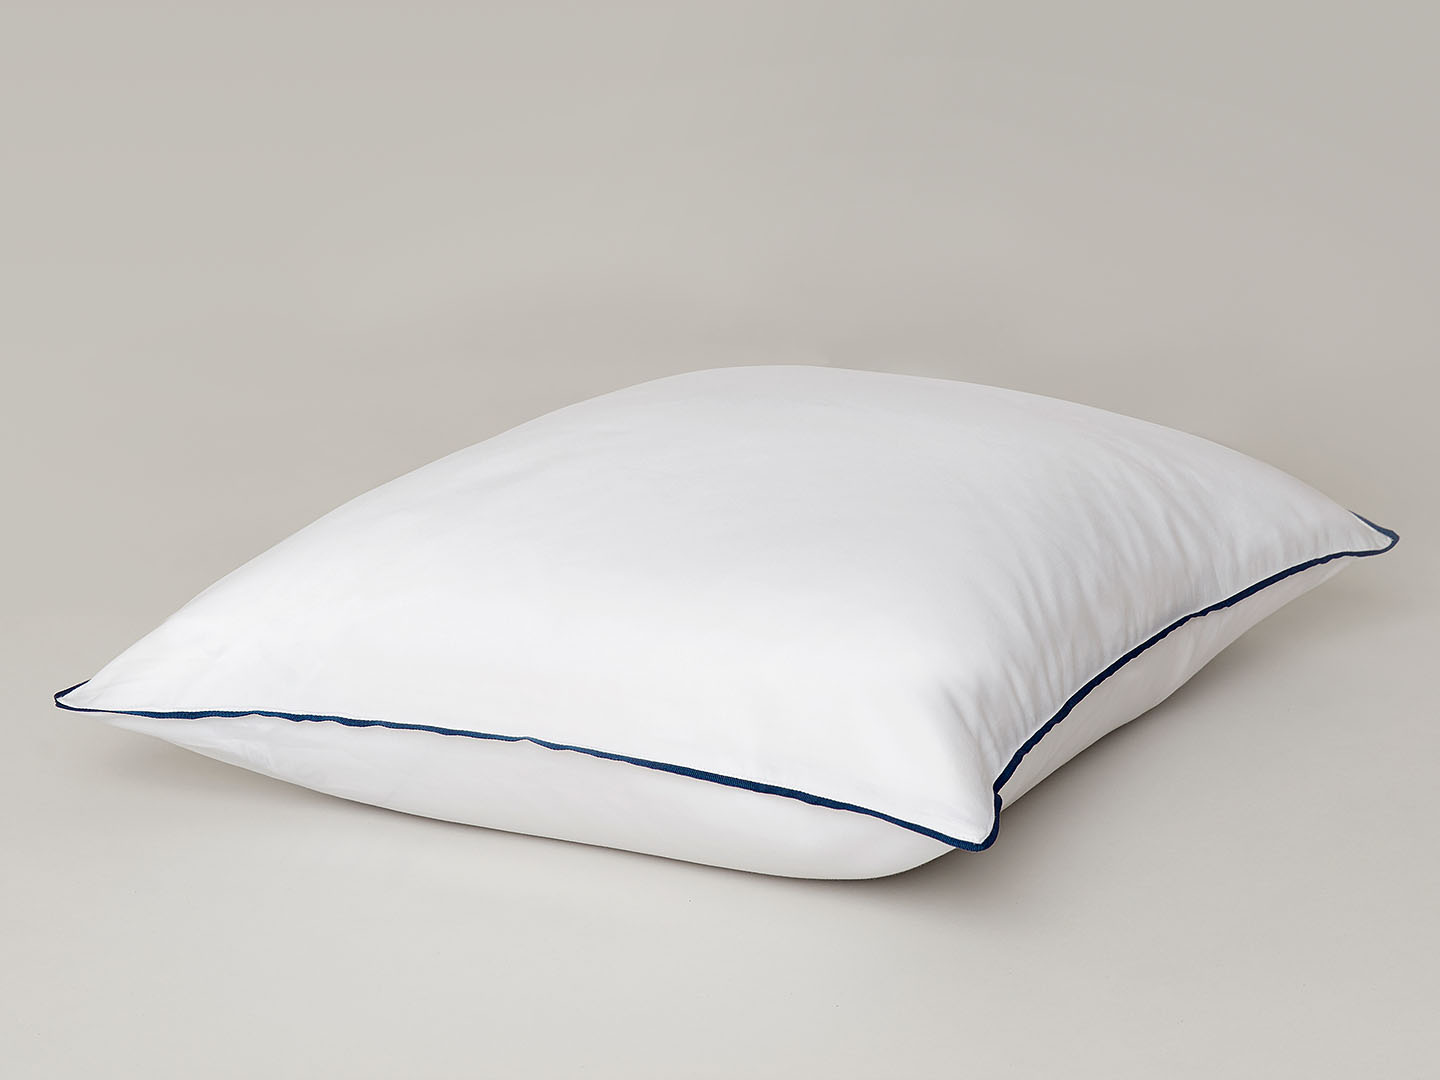 Pillowcase Strimma - Cloud White